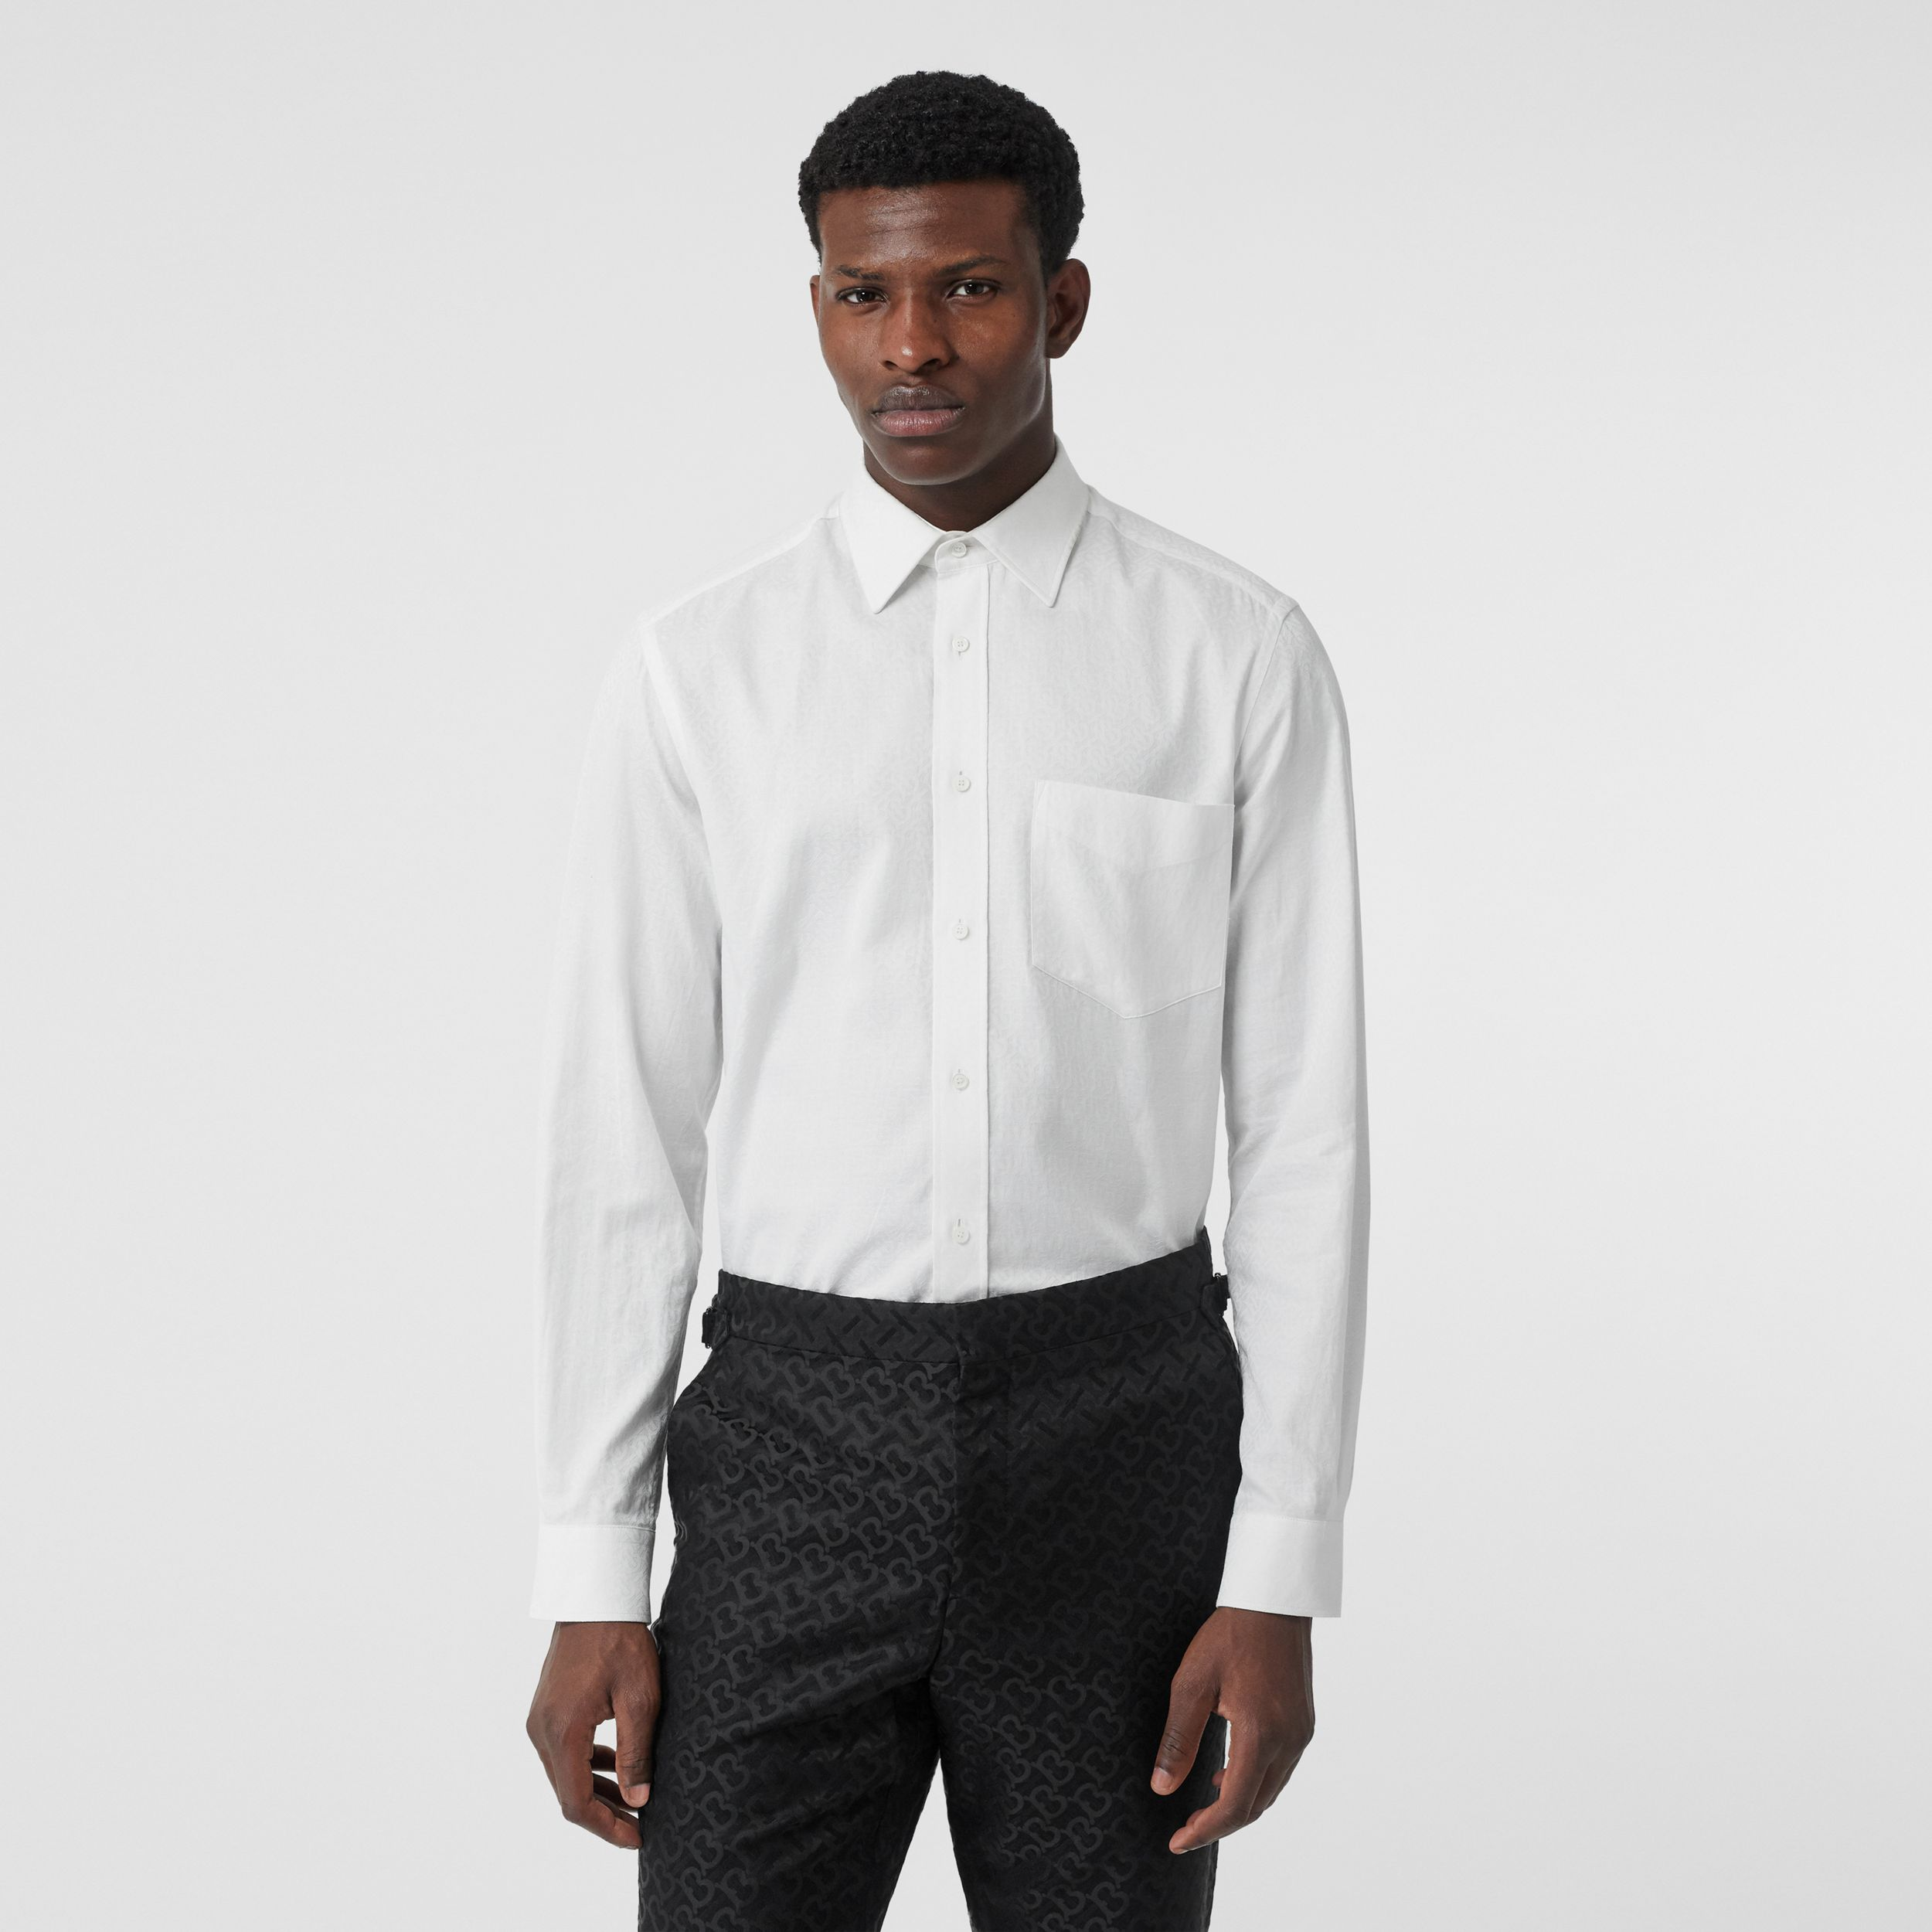 Classic Fit Monogram Cotton Jacquard Shirt in White | Burberry - 1